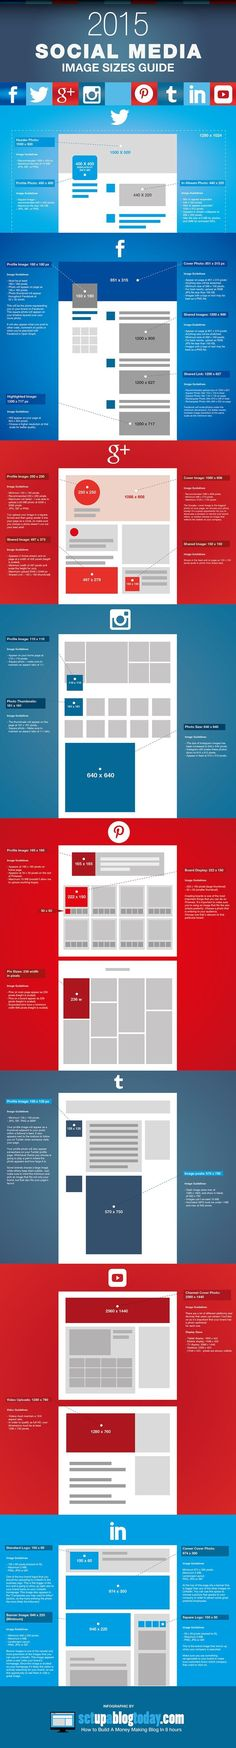 Love this cheat sheet for social media image sizes! Every DIY business owner knows the struggle that can come along adjusting your image sizes for every platform. Check out The Essential Cheat Sheet for Social Media Image Sizes